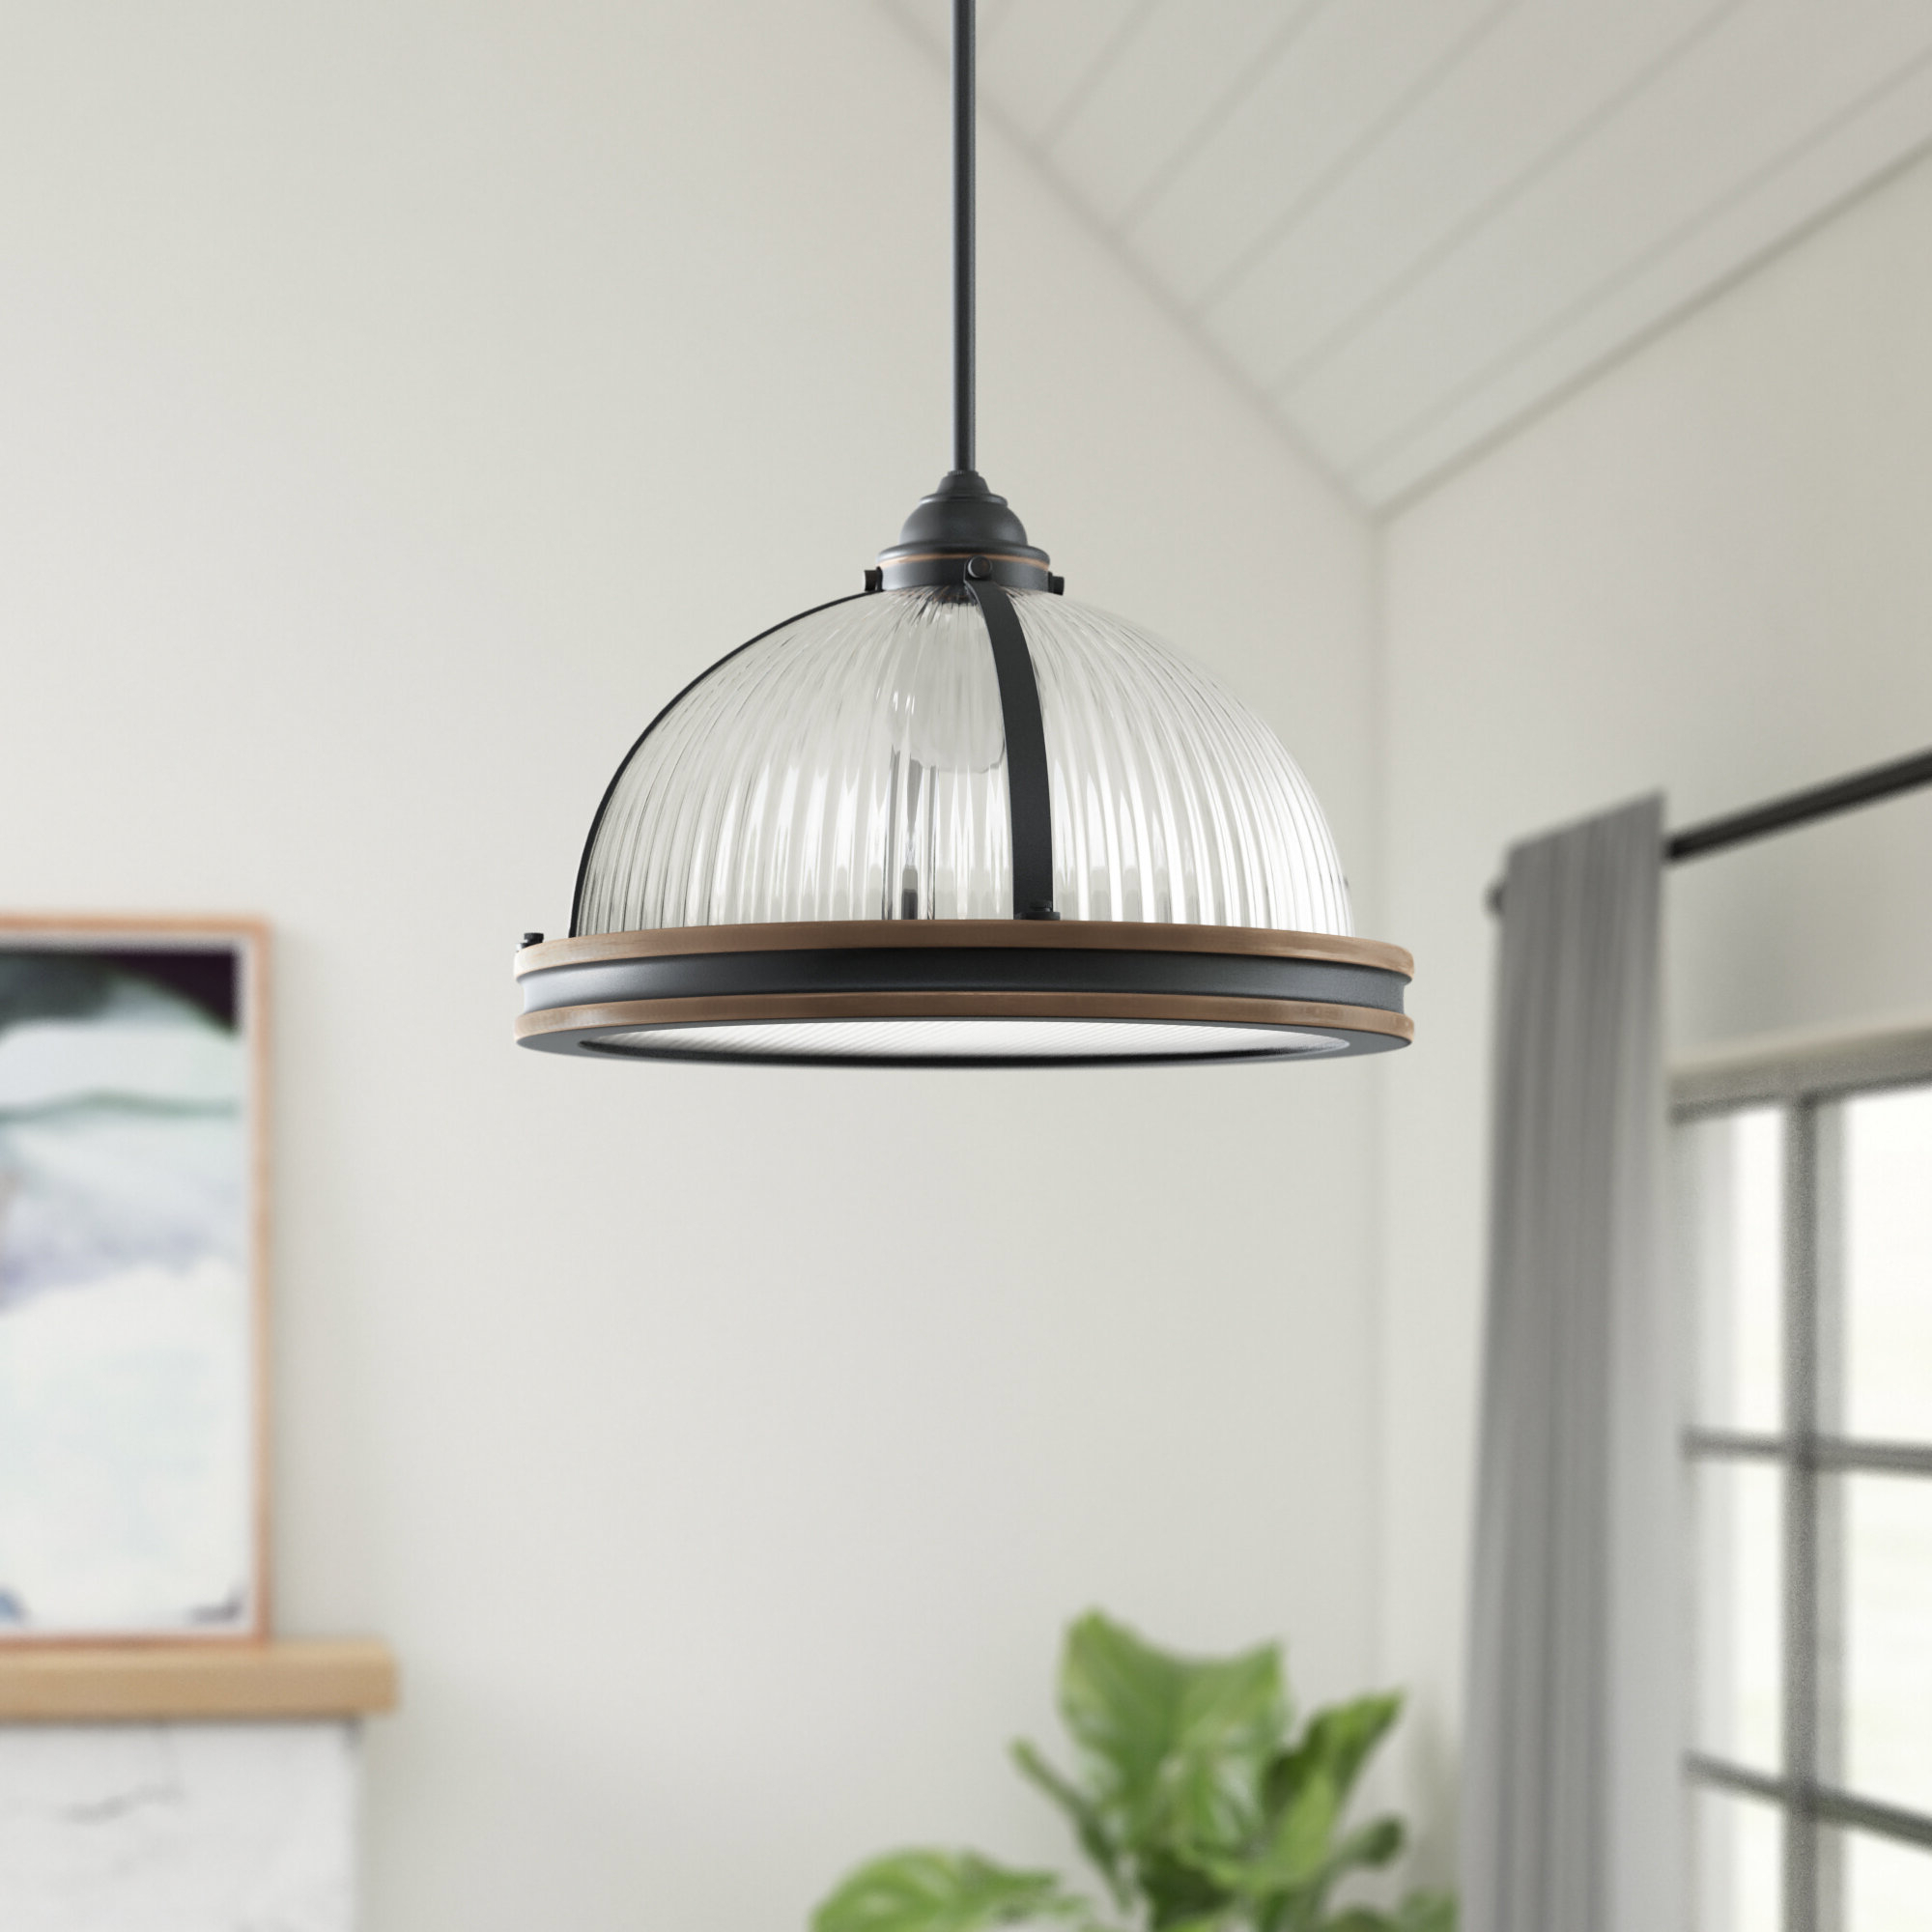 Granville 2 Light Single Dome Pendants With Regard To Famous Granville 3 Light Single Dome Pendant (View 12 of 25)